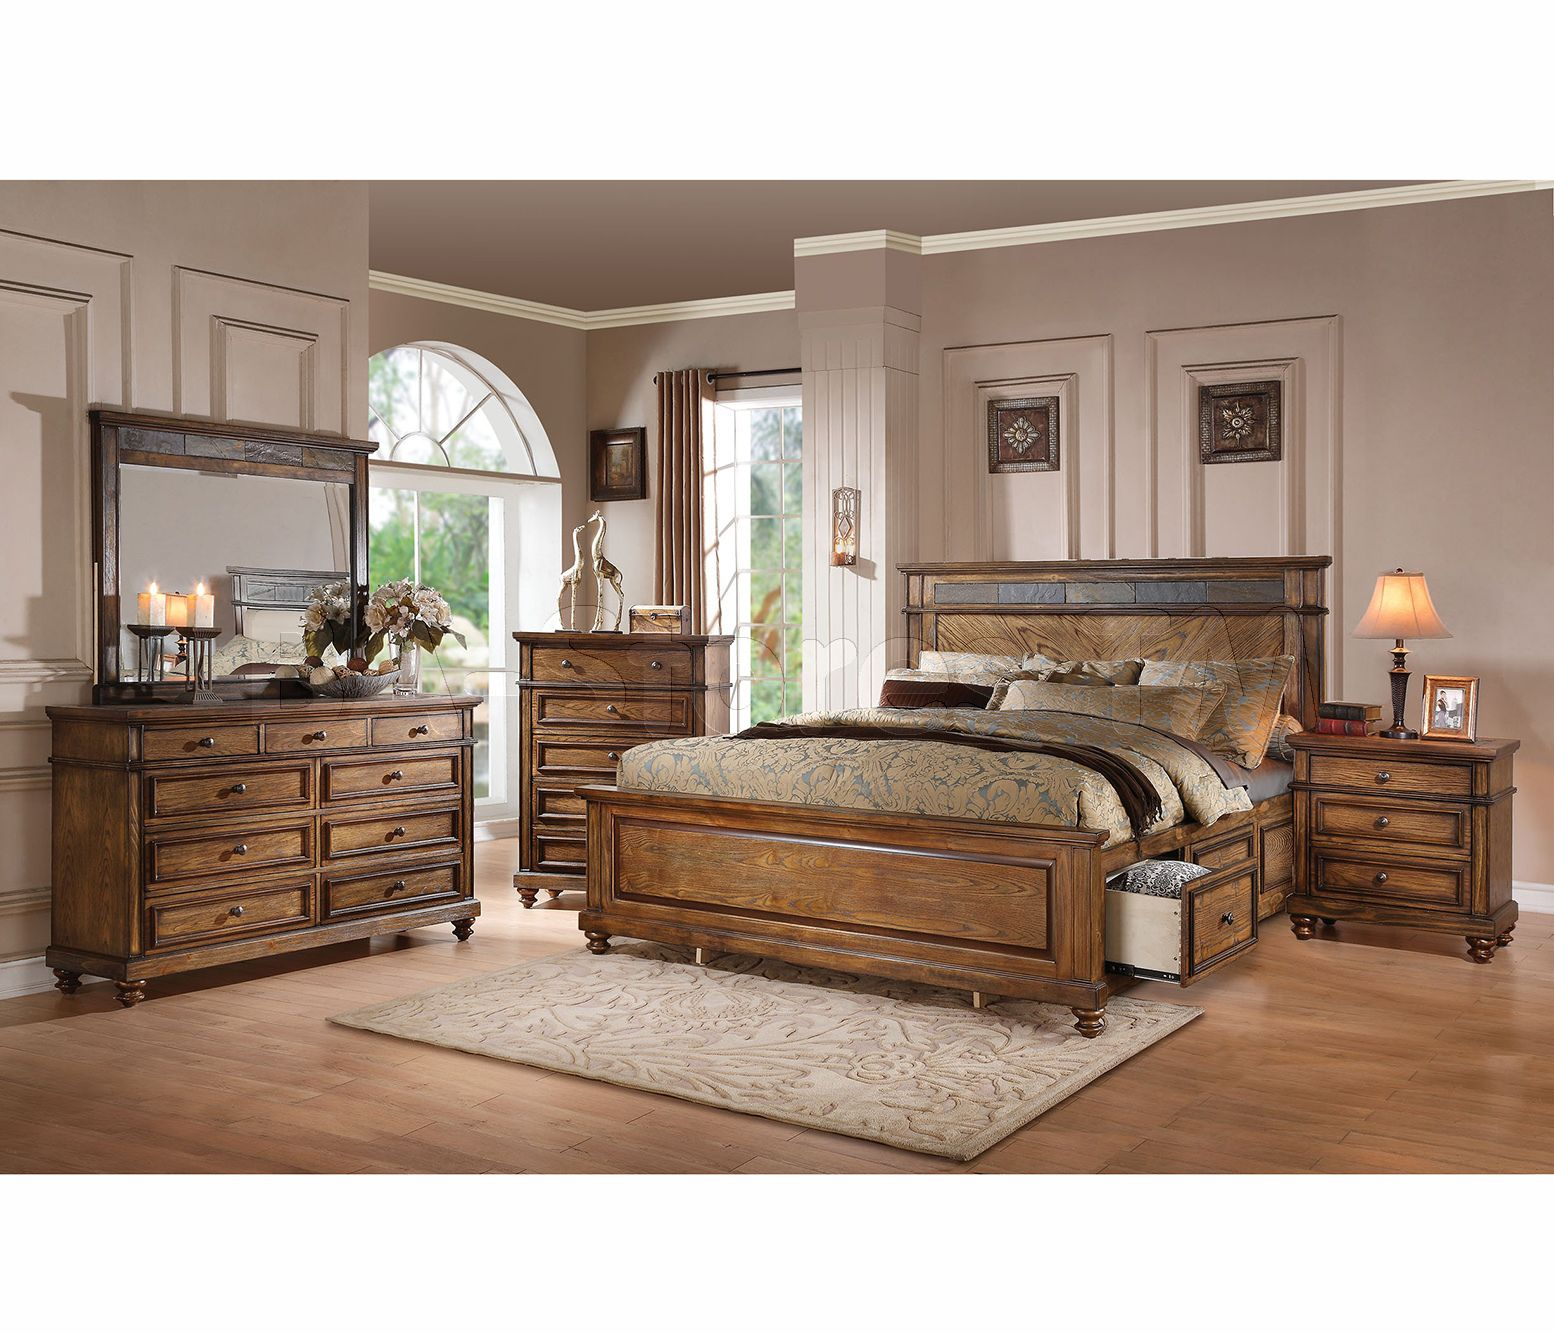 Elegant wood modern master bedroom set feat wood grain cincinnati ohio - Largest Bedroom Sets Collection A Rich Oak Finish Of The Bedroom Set Creates A Warm And Lovely Ambience In Your Space